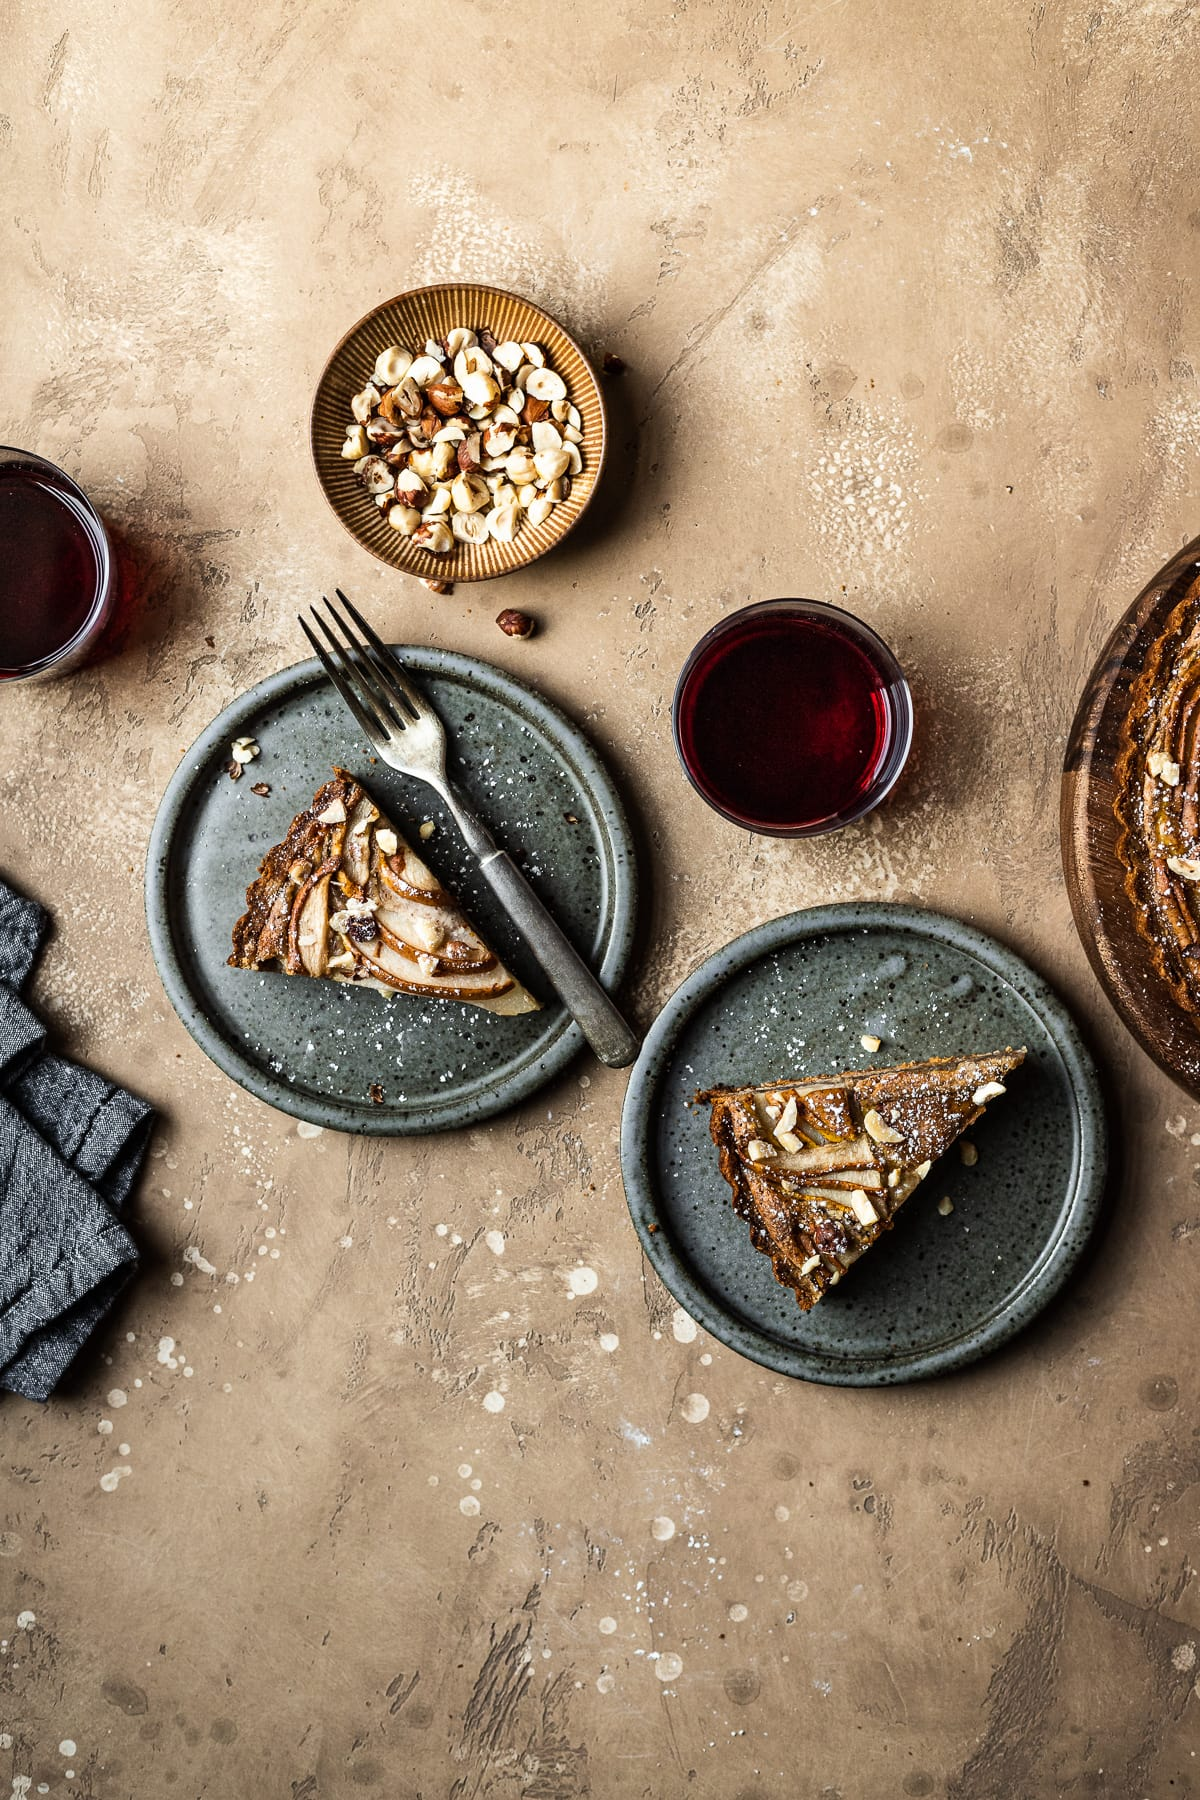 Two slices of tart on speckled grey blue ceramic plates. To the right is the remainder of the tart. A small bowl of hazelnuts, and two stemless wine glasses filled with red wine surround the plates. A grey textured linen napkin is at lower left. The background of the image is a warm tan speckled stone.